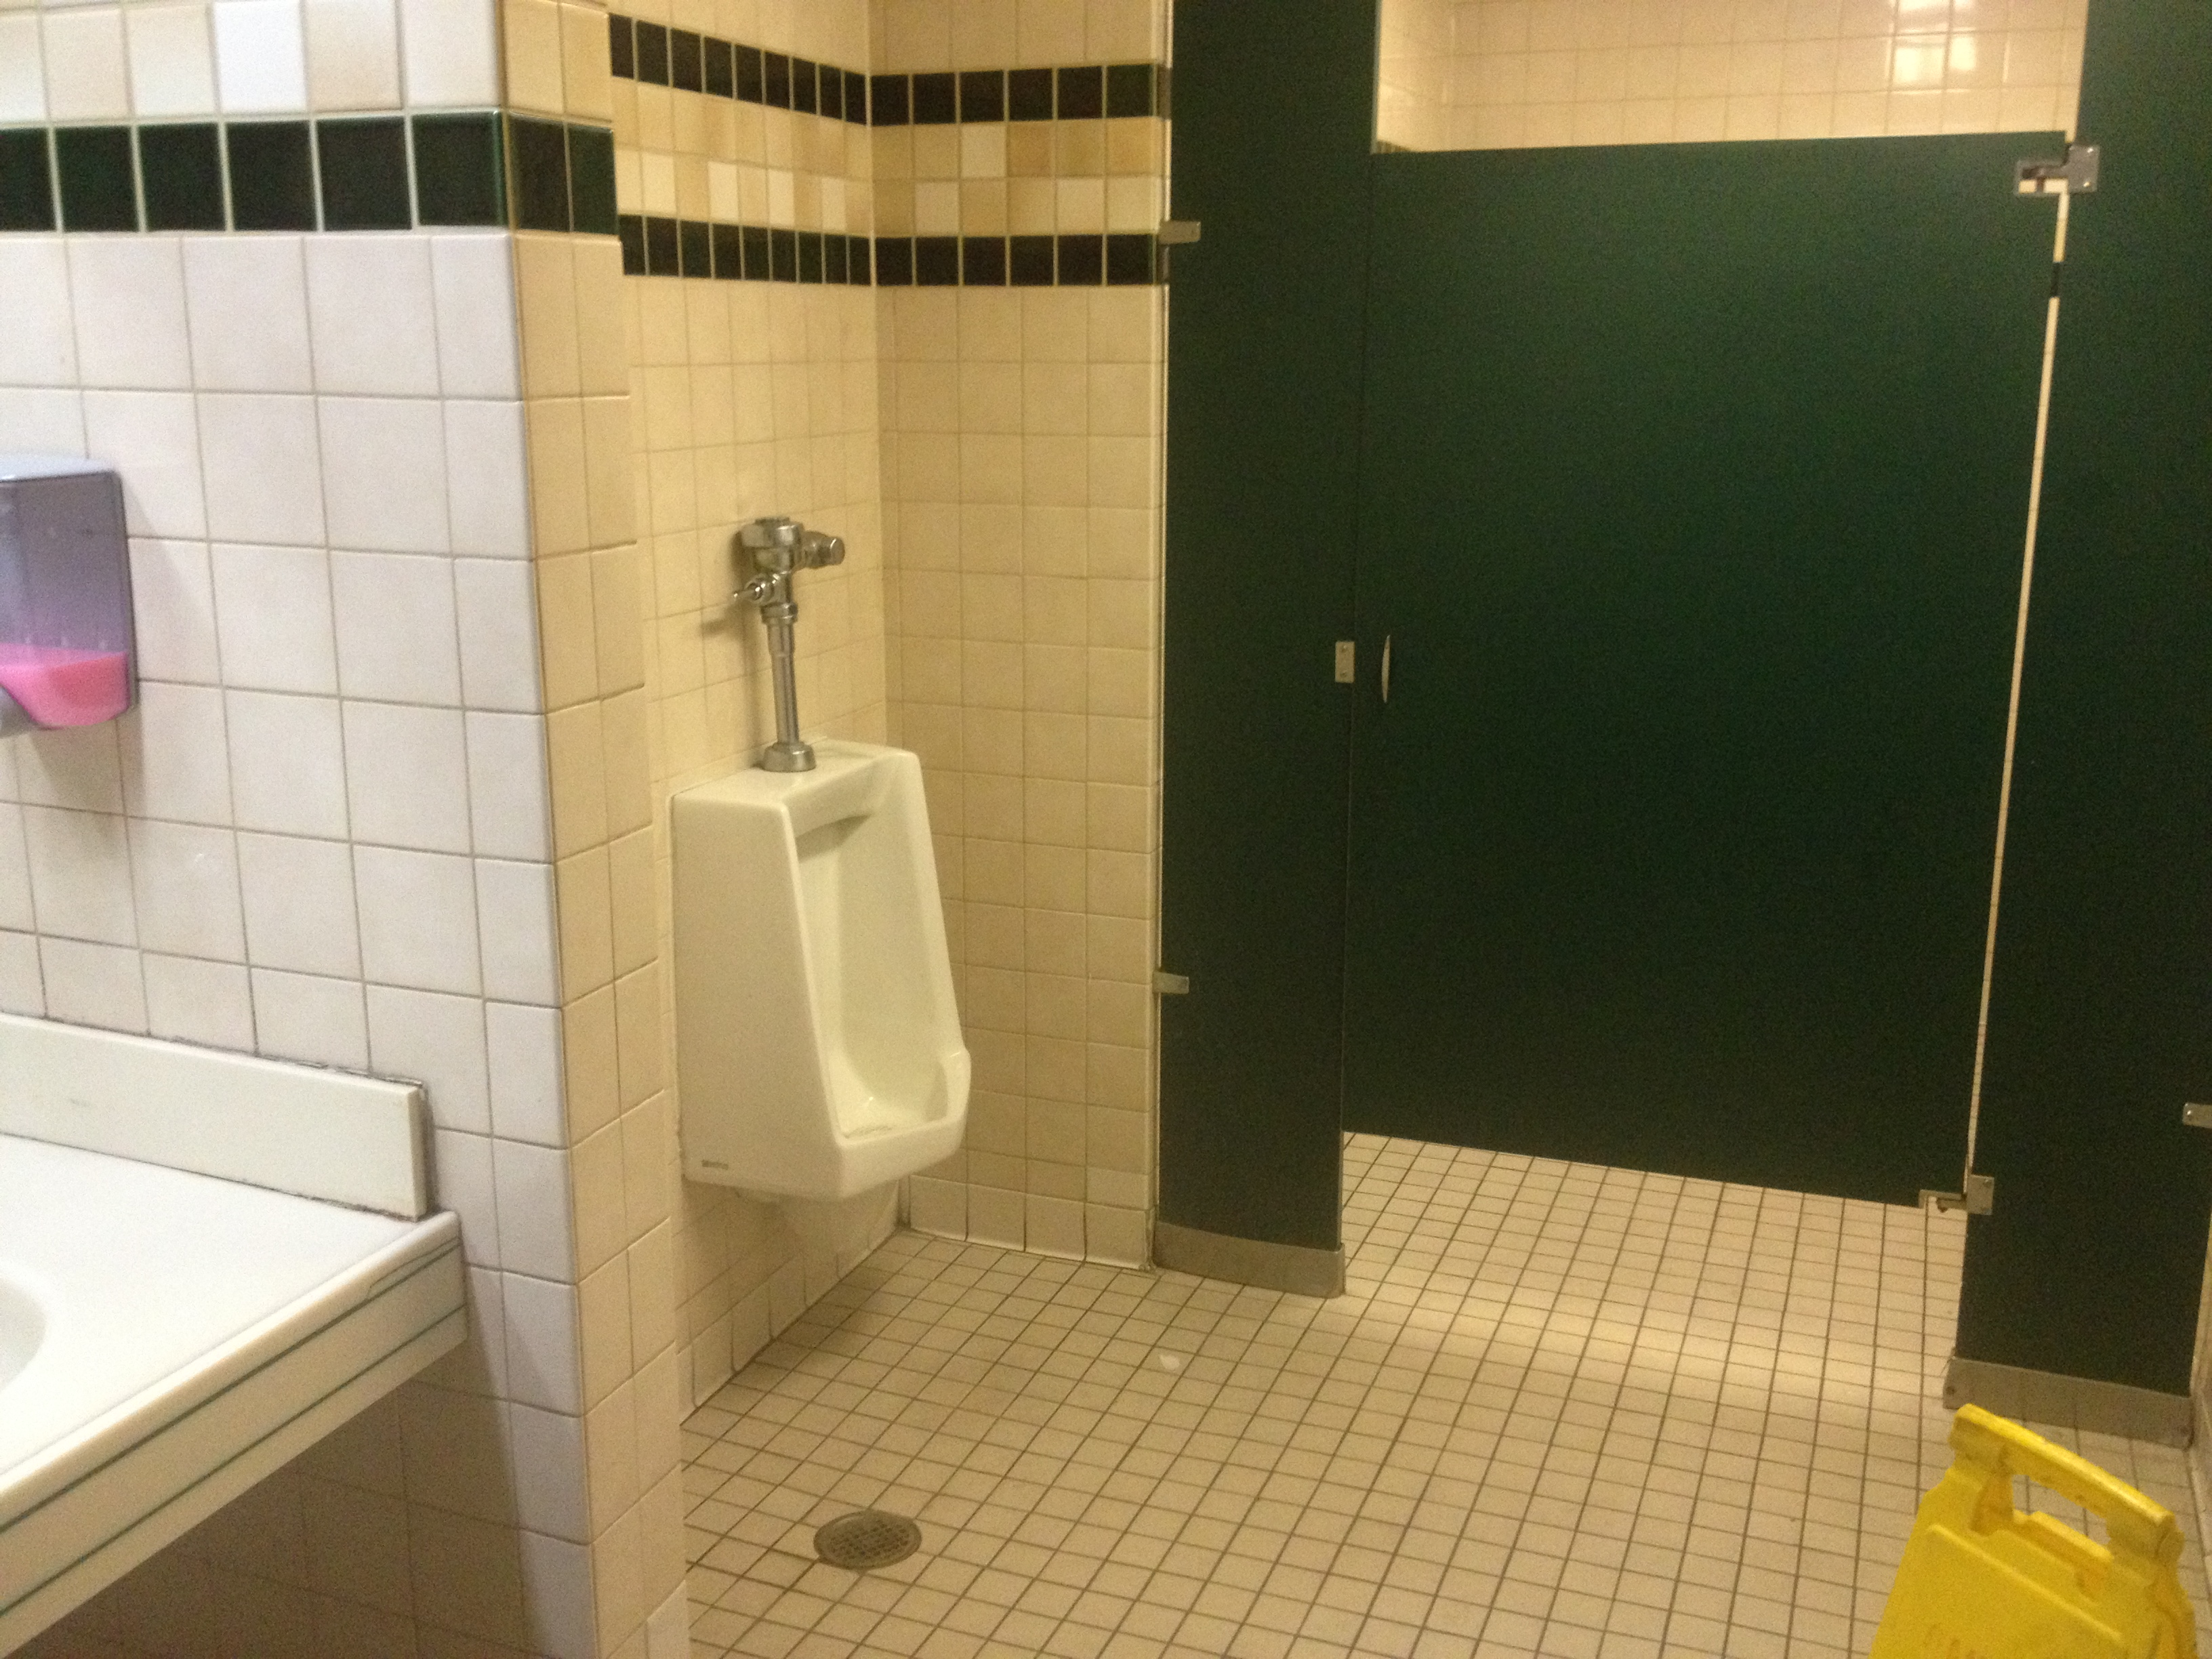 Albertsons restroom images reverse search for Bathrooms r us reviews